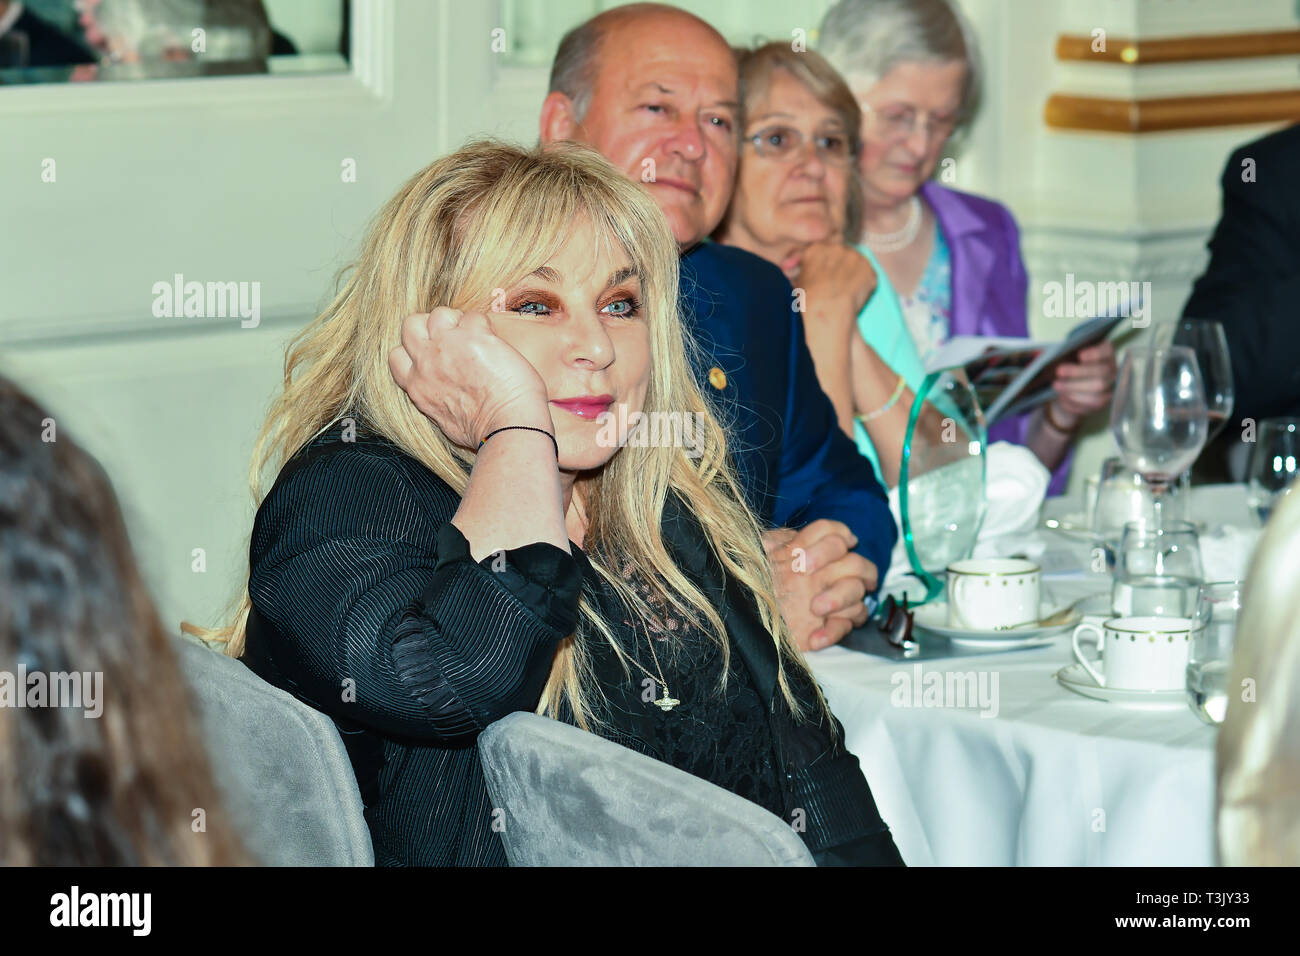 London, UK. 10th Apr, 2019. Helen Lederer attends the 7th annual Churchill Awards honour achievements of the Over 65's at Claridge's Hotel on 10 March 2019, London, UK. Credit: Picture Capital/Alamy Live News Stock Photo